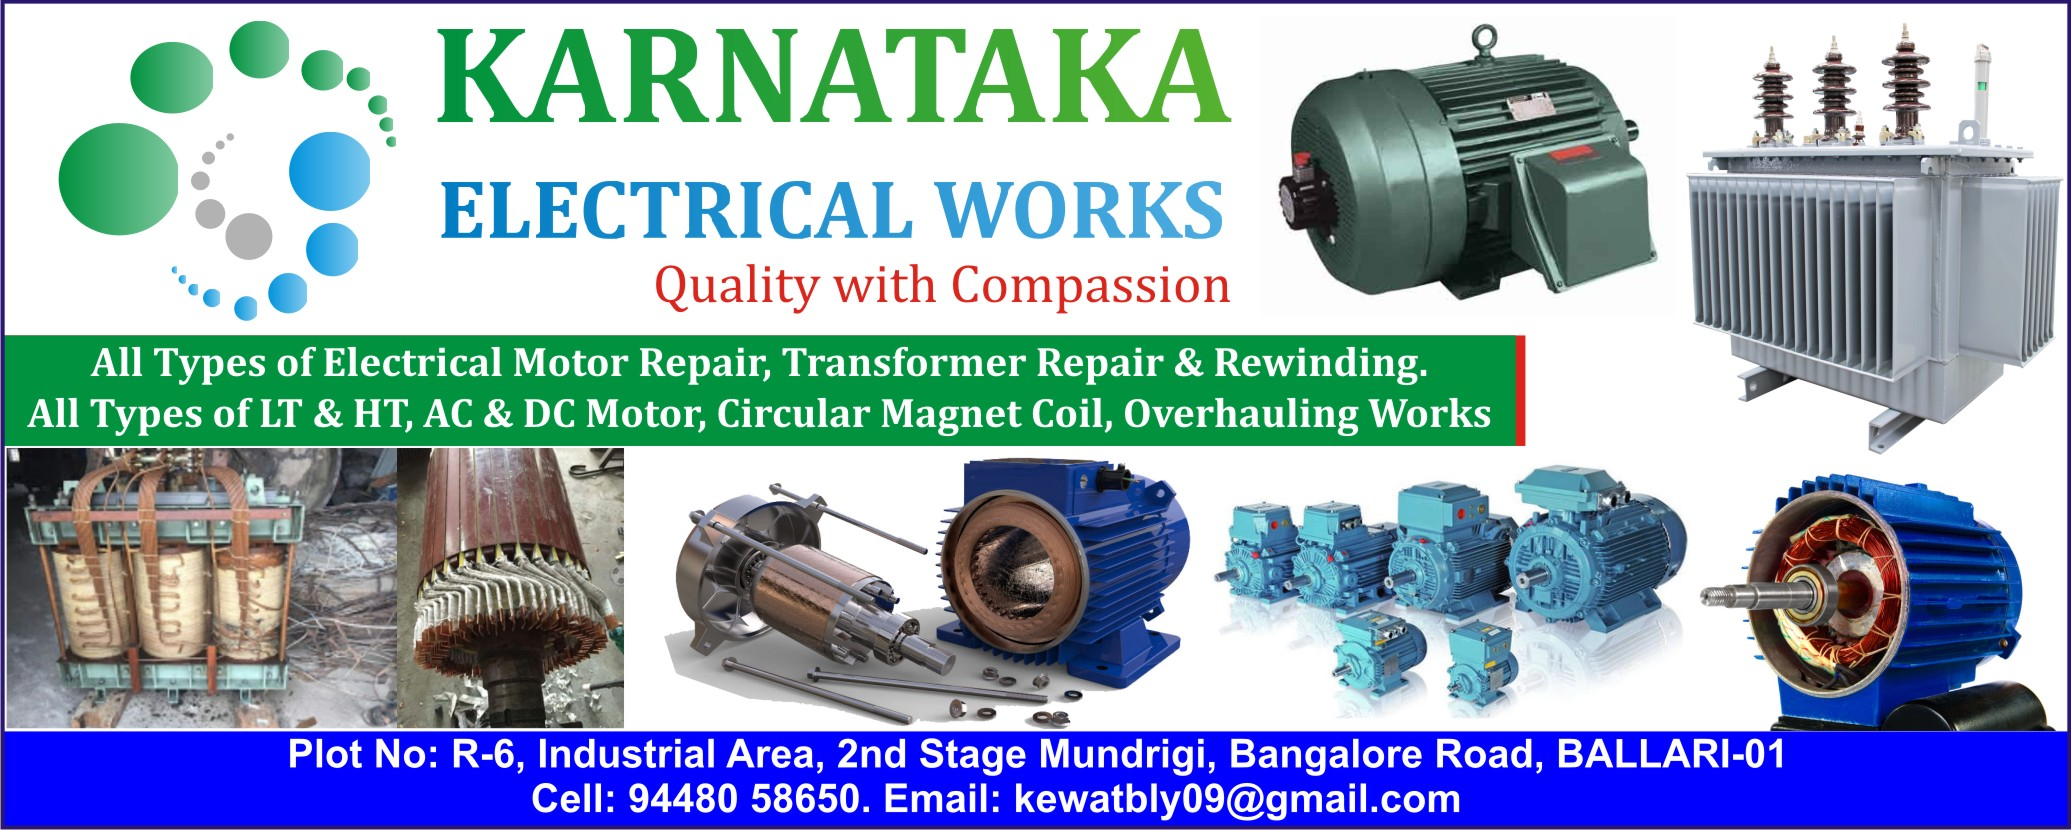 Karnataka Electrical Works